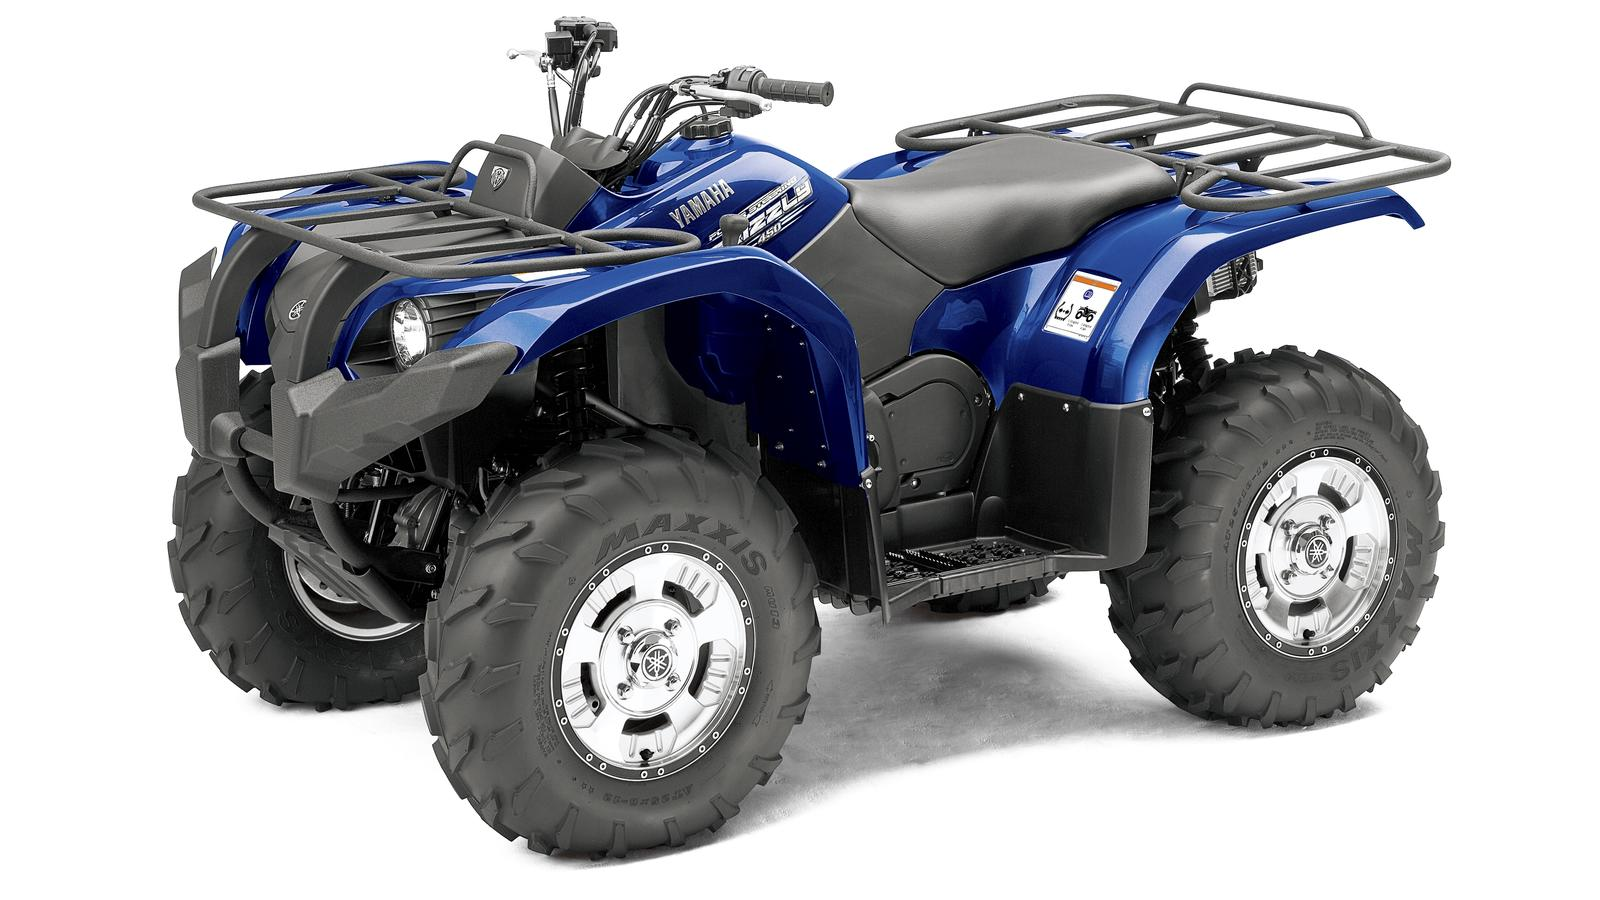 YAMAHA Grizzly 450  2011 photo 6